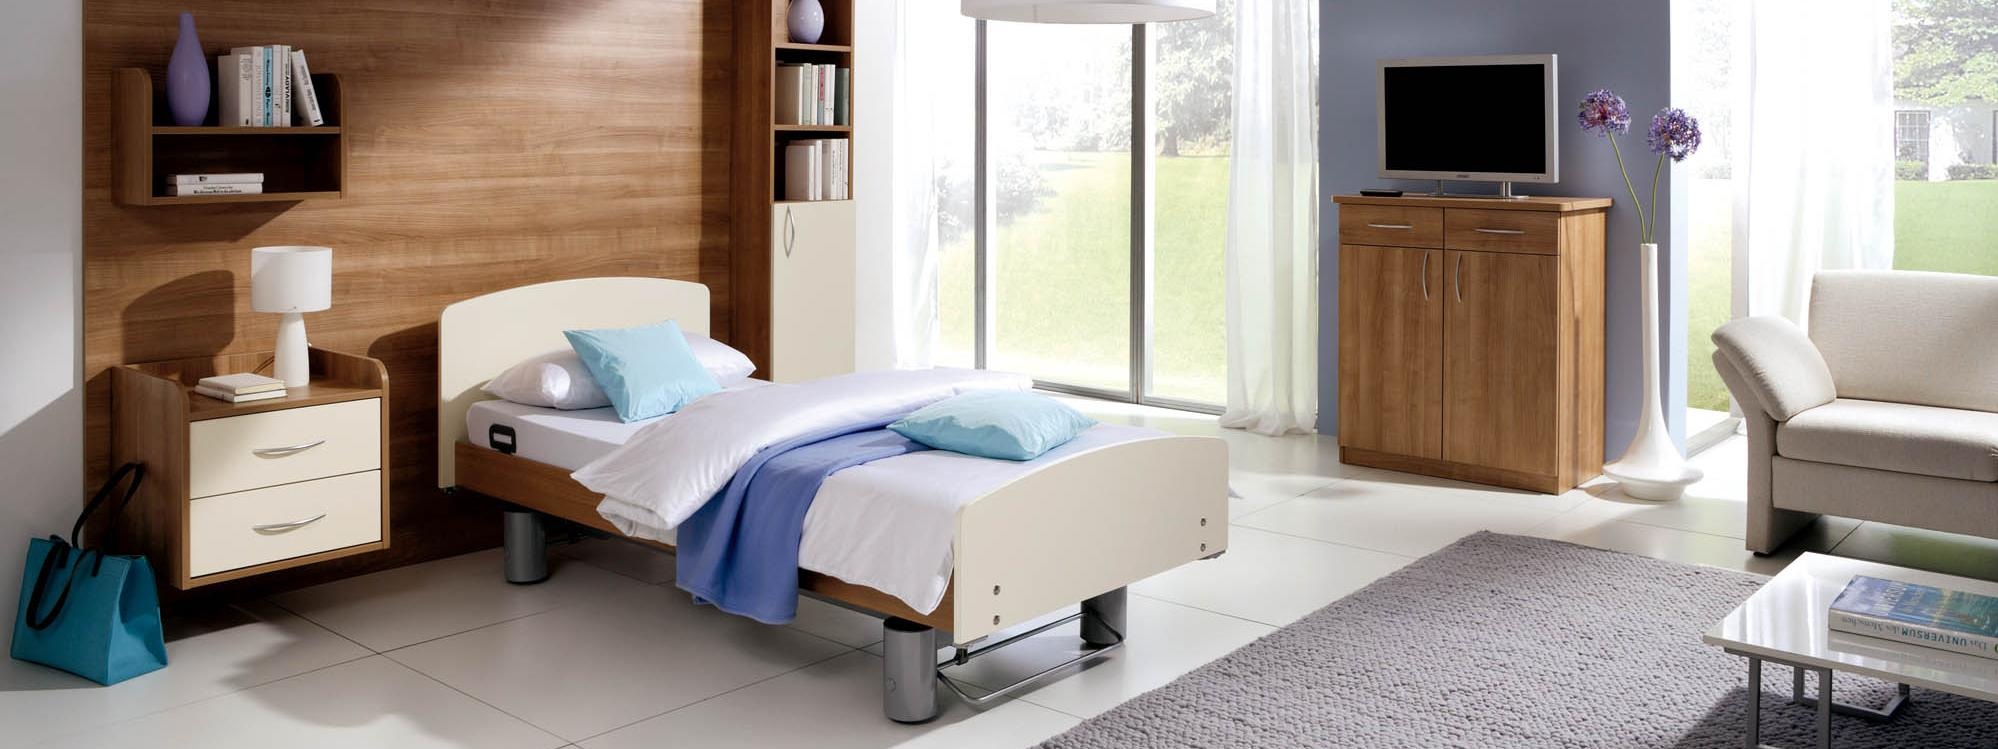 Elvido reha care bed without safety sides